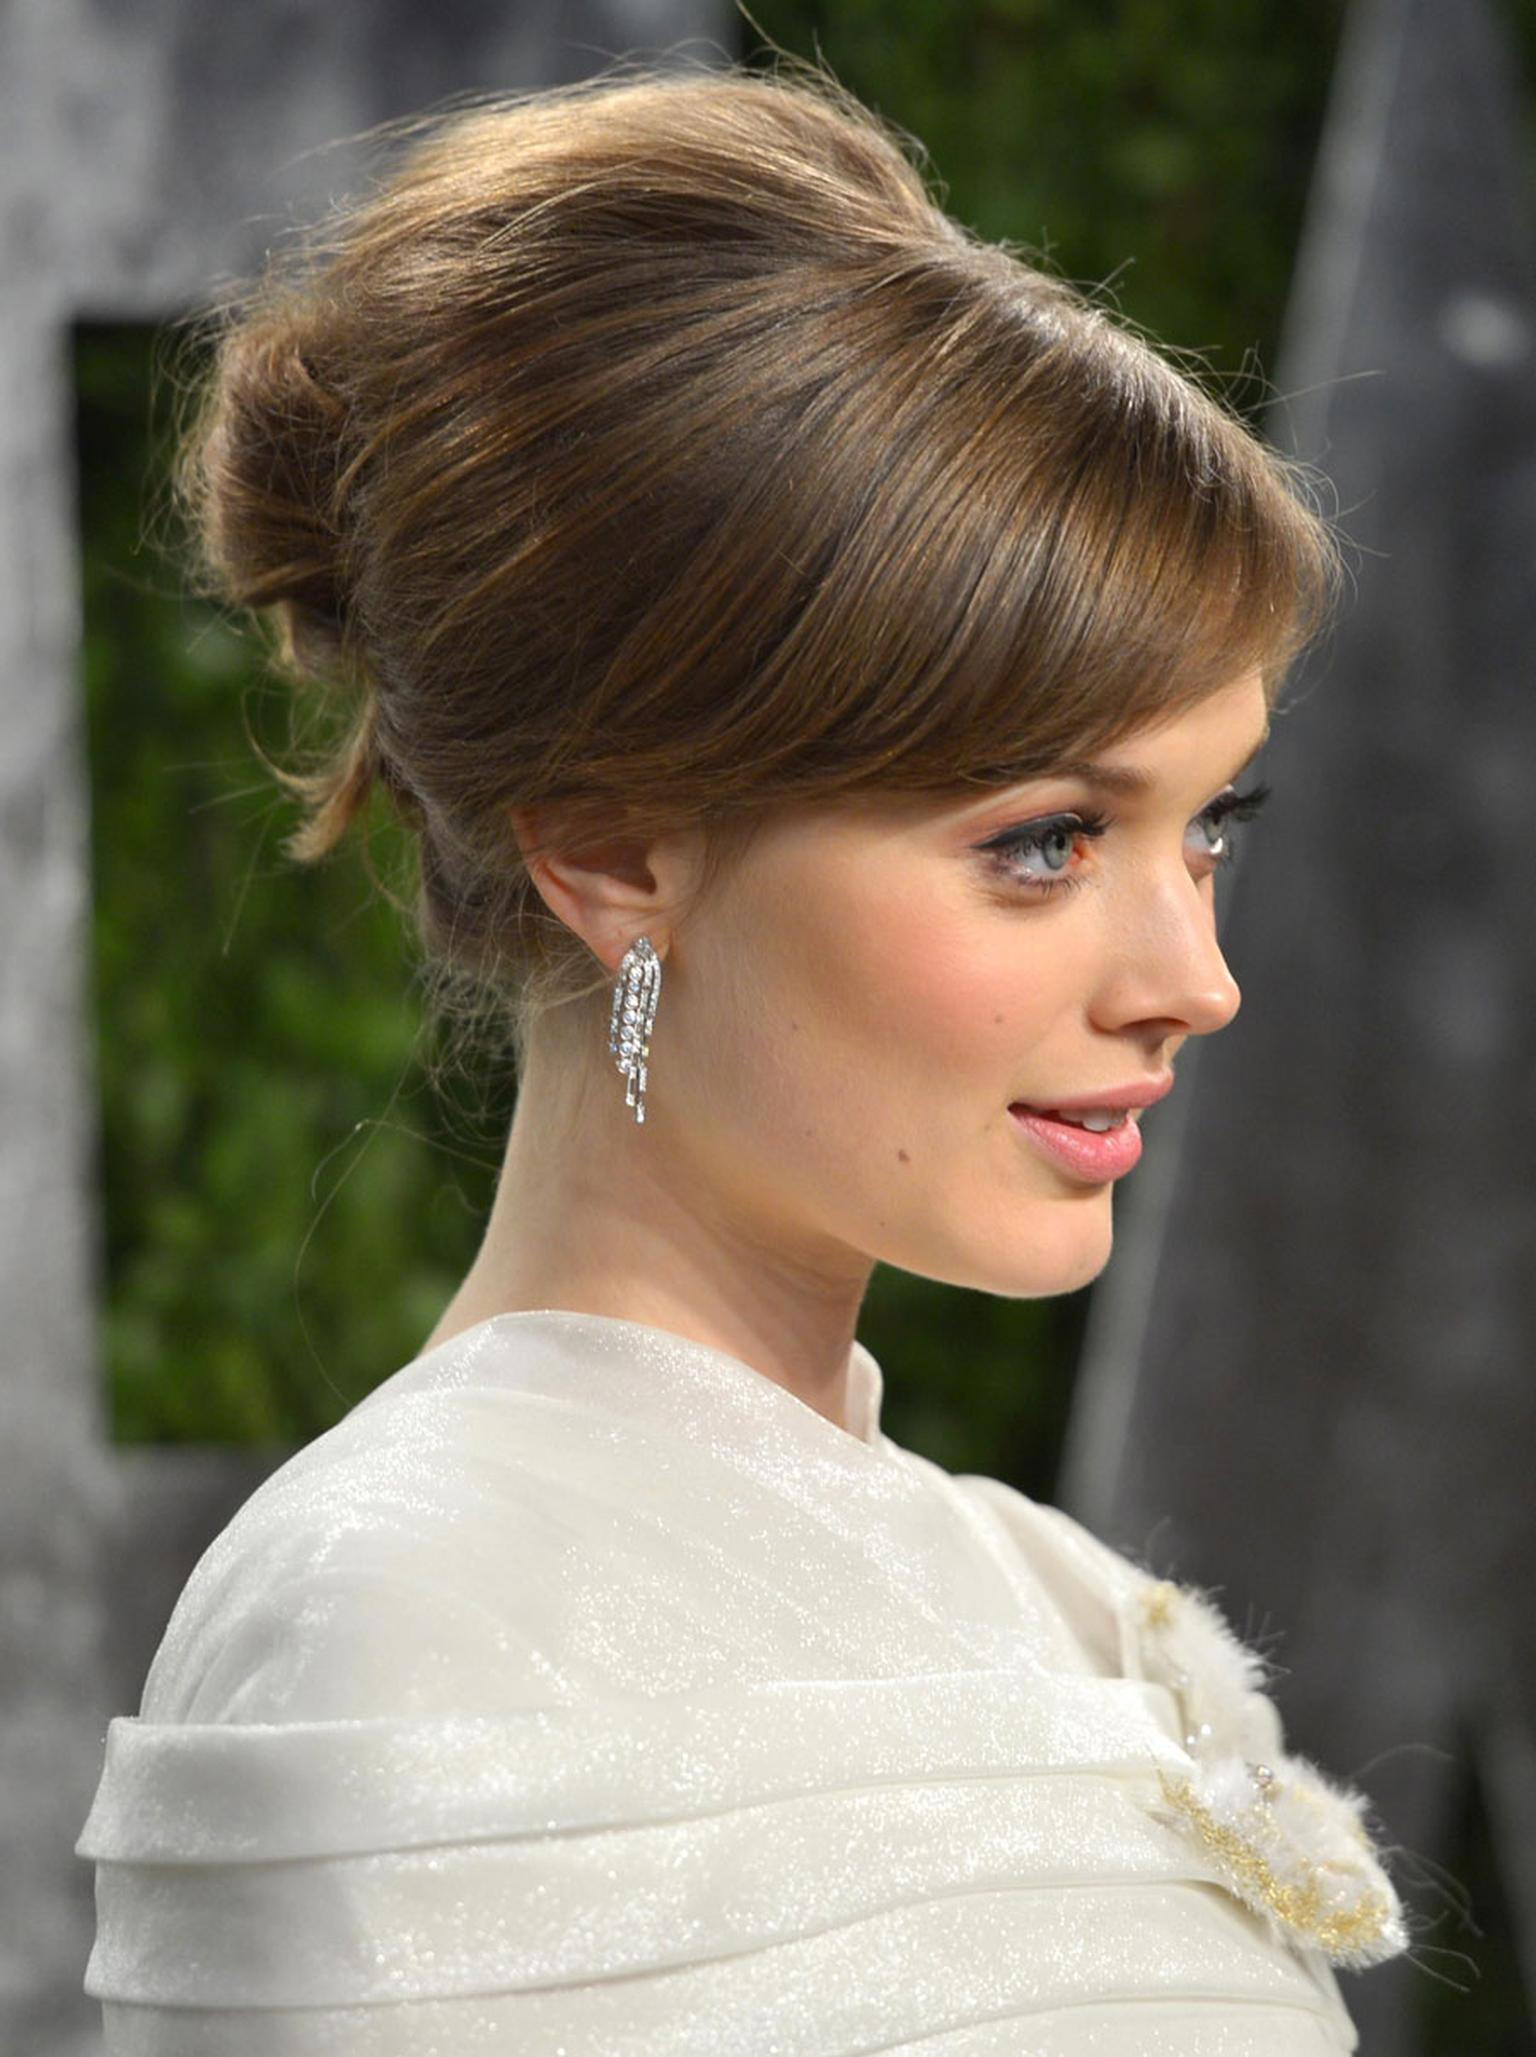 Chanel-Bella-Heathcote---Oscars-2013